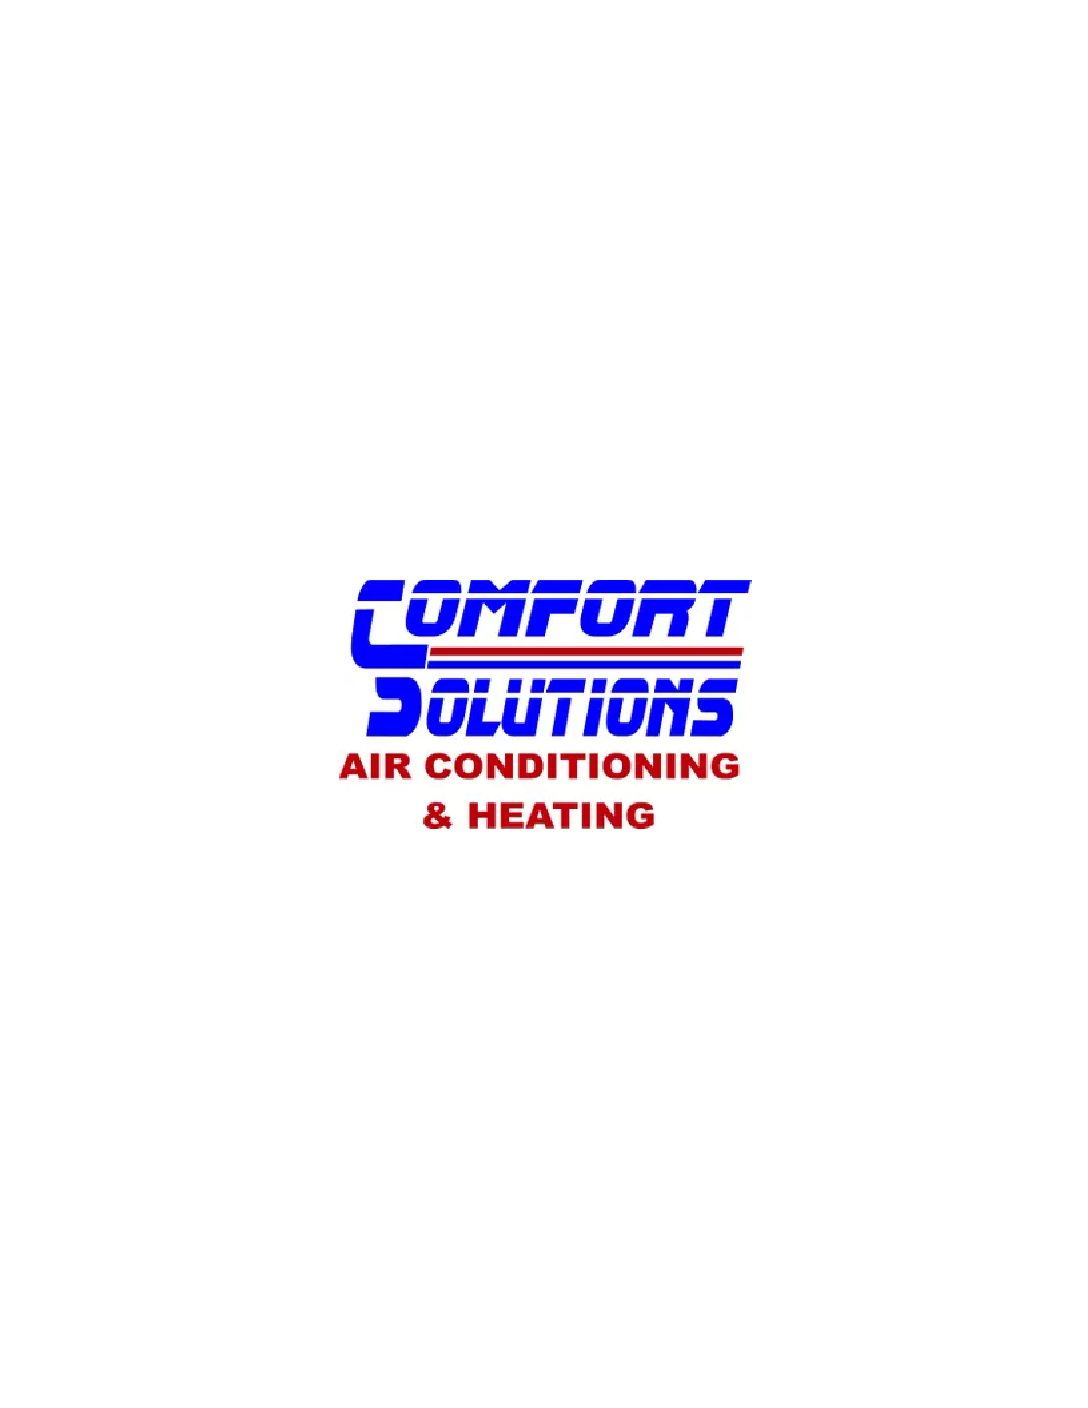 Comfort Solutions AC